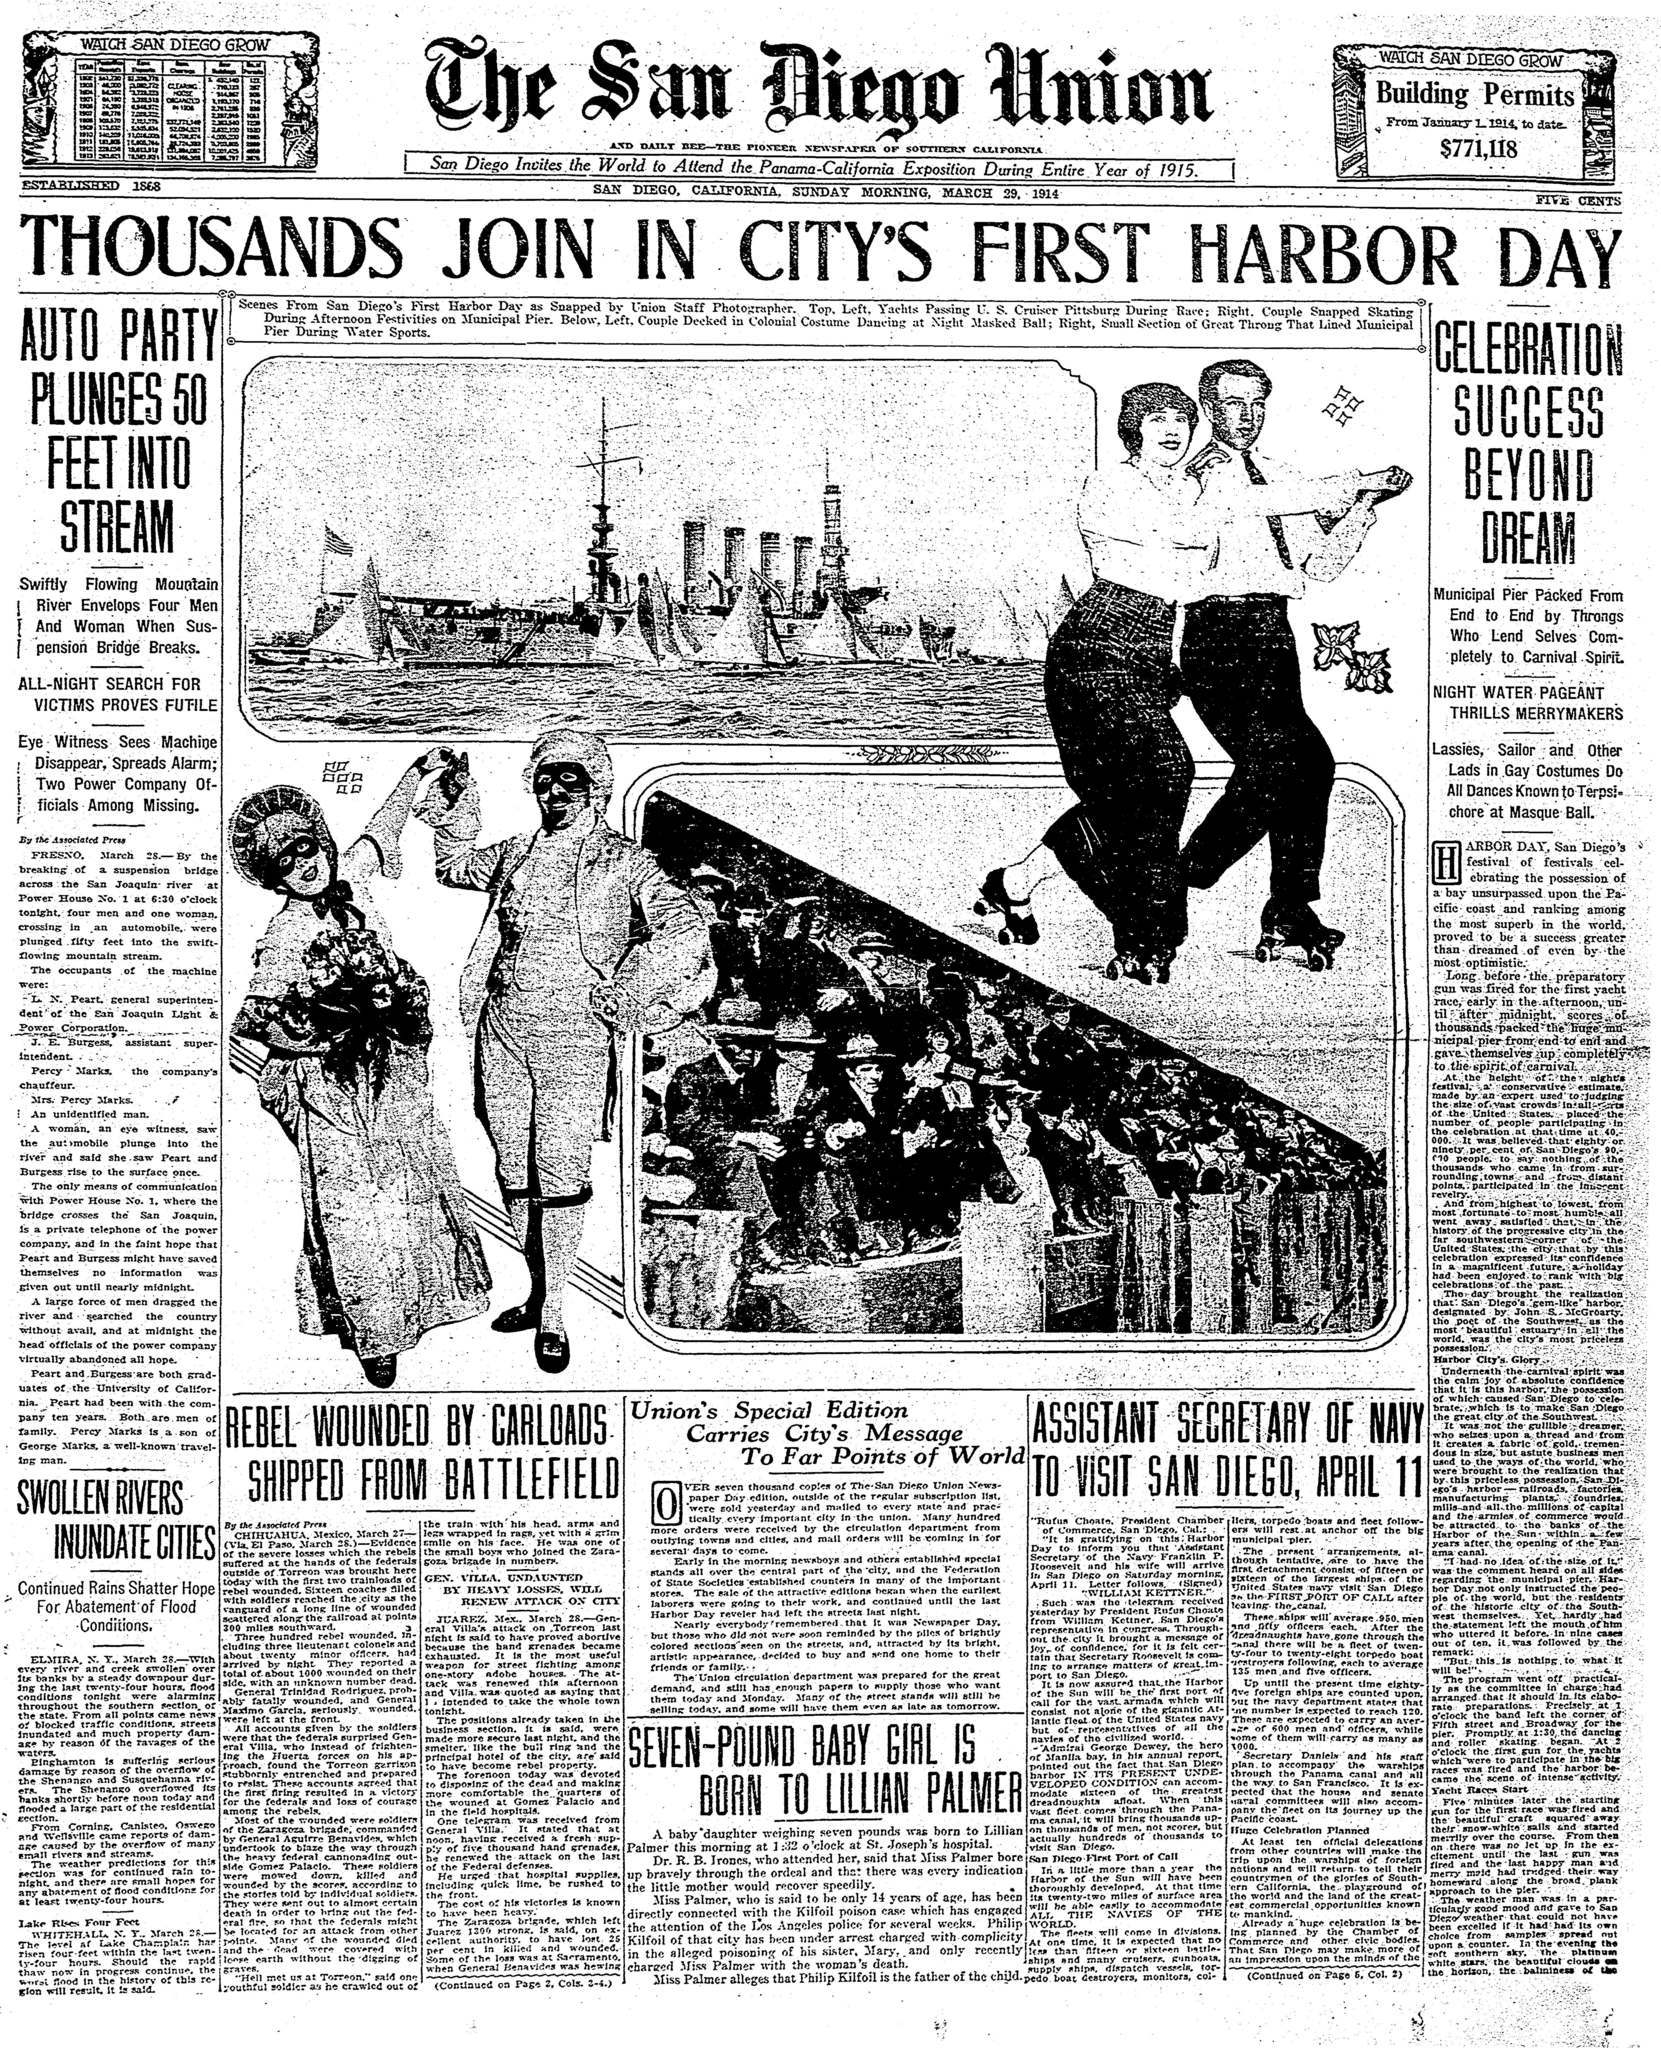 March 29, 1914